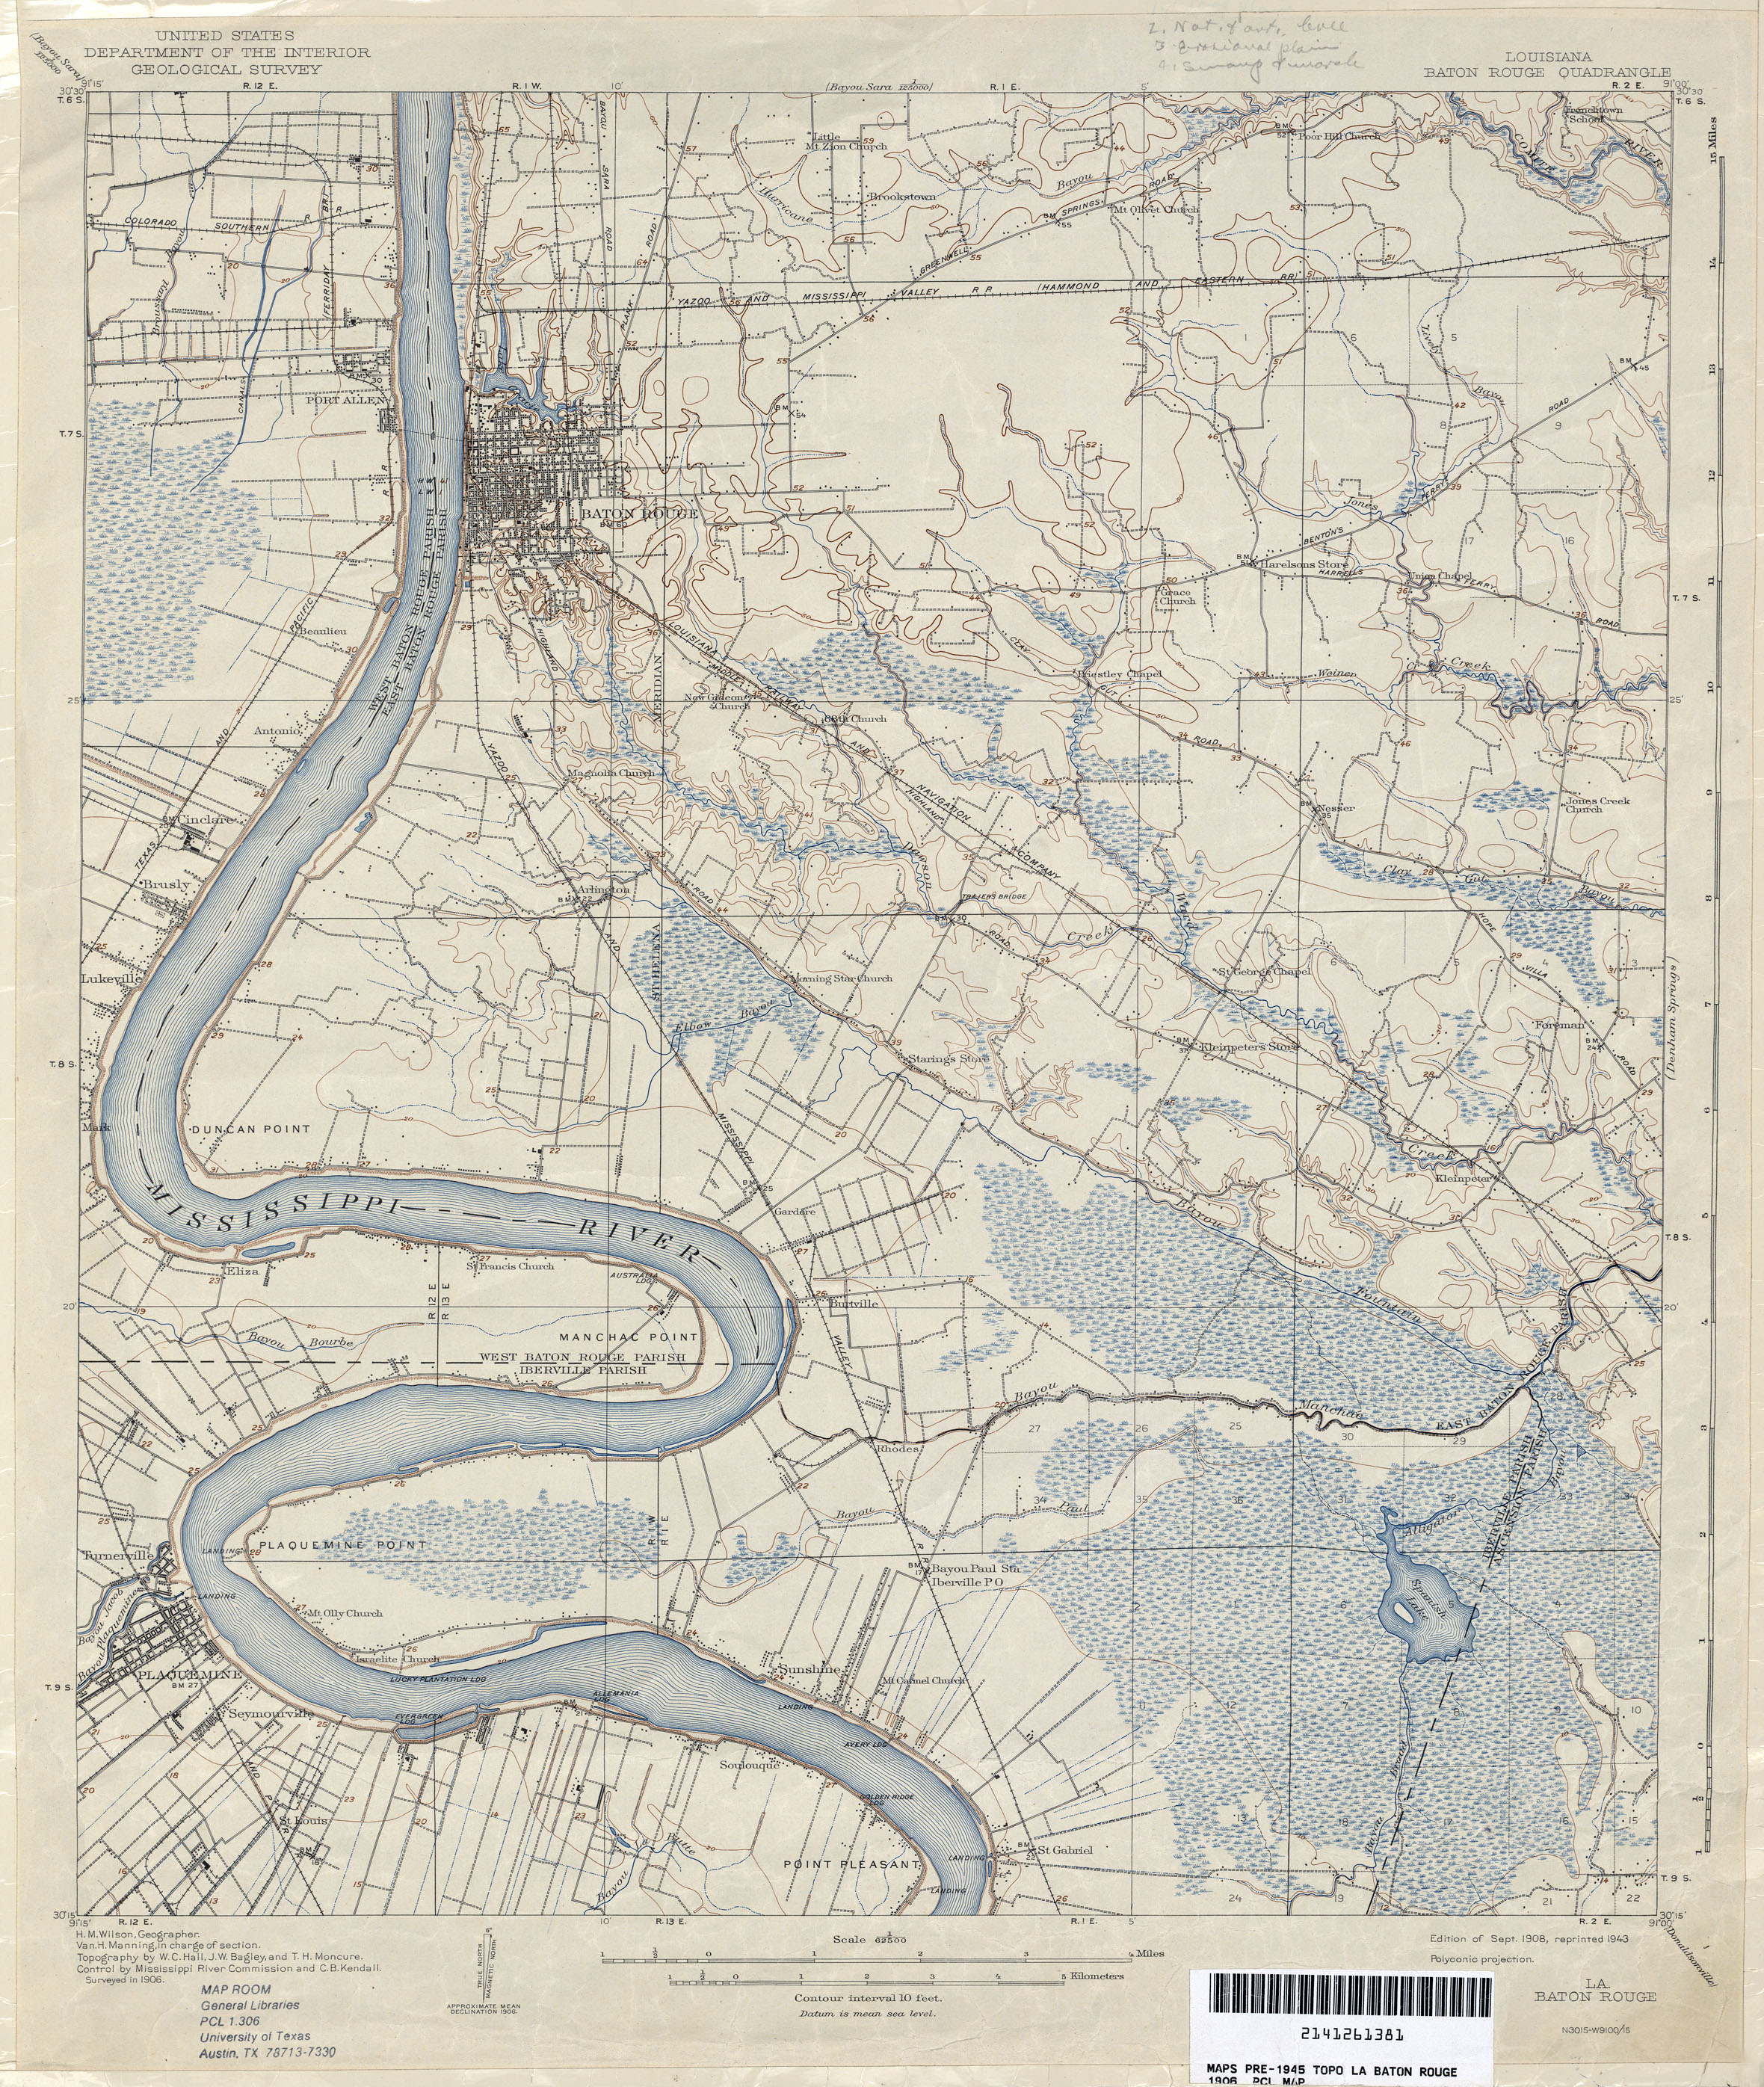 Opelousas Louisiana Map.Louisiana Topographic Maps Perry Castaneda Map Collection Ut